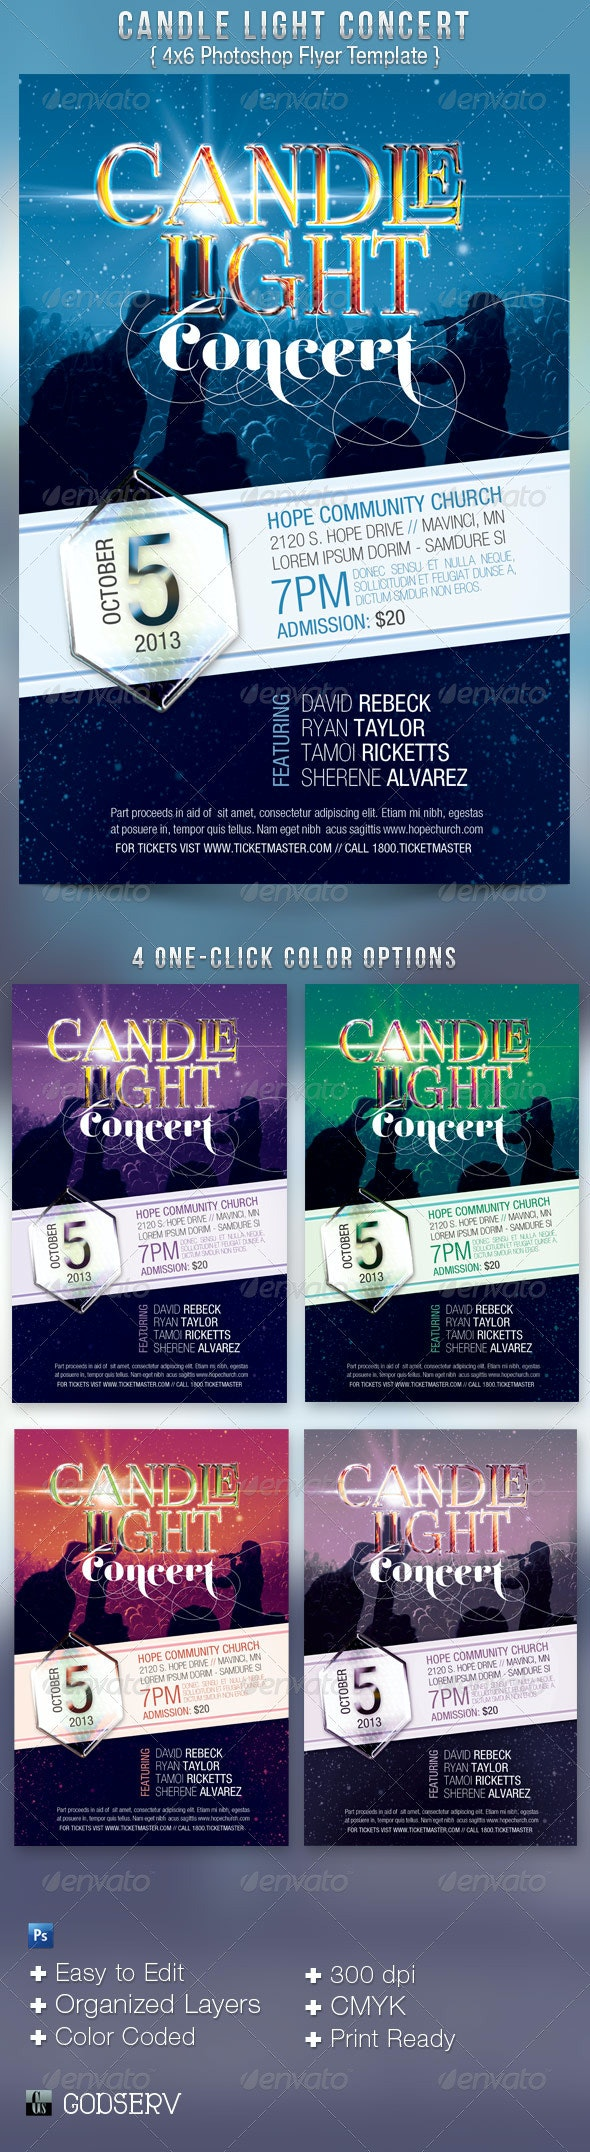 Candle Light Concert Flyer Template - Church Flyers